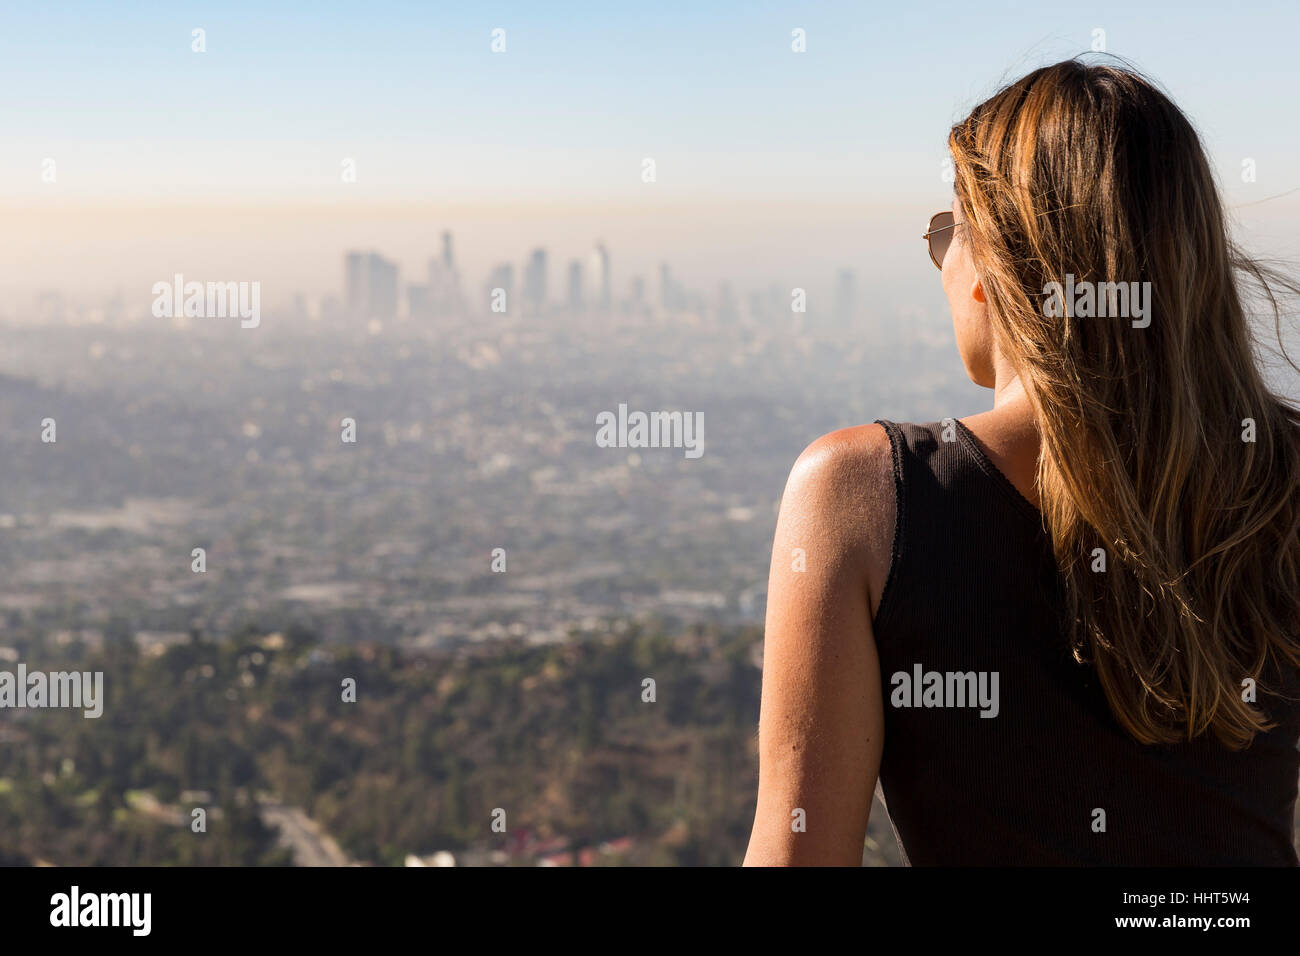 Woman looking at Los Angels from Dante's view. Aug, 2016. Los Angeles, California, U.S.A. - Stock Image